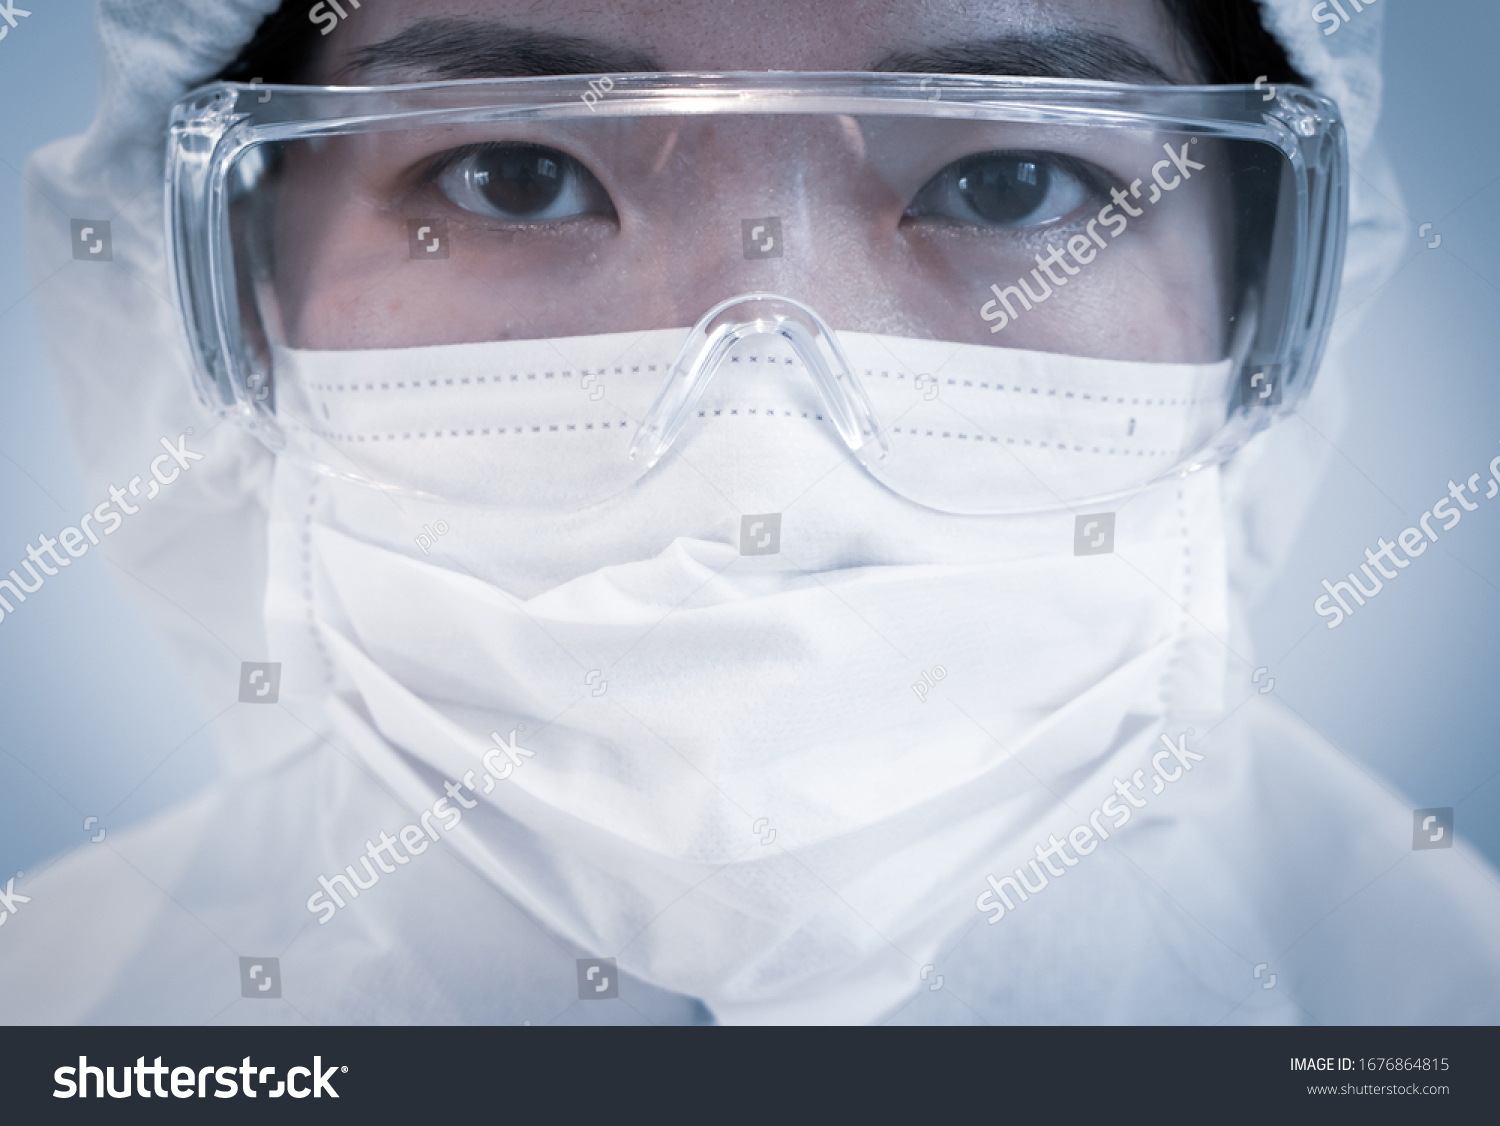 A doctor wearing personal protective equipment or ppe including mask, goggle, and suit to protect COVID-19 infection. coronavirus, medical, healthcare, quarantine concept #1676864815